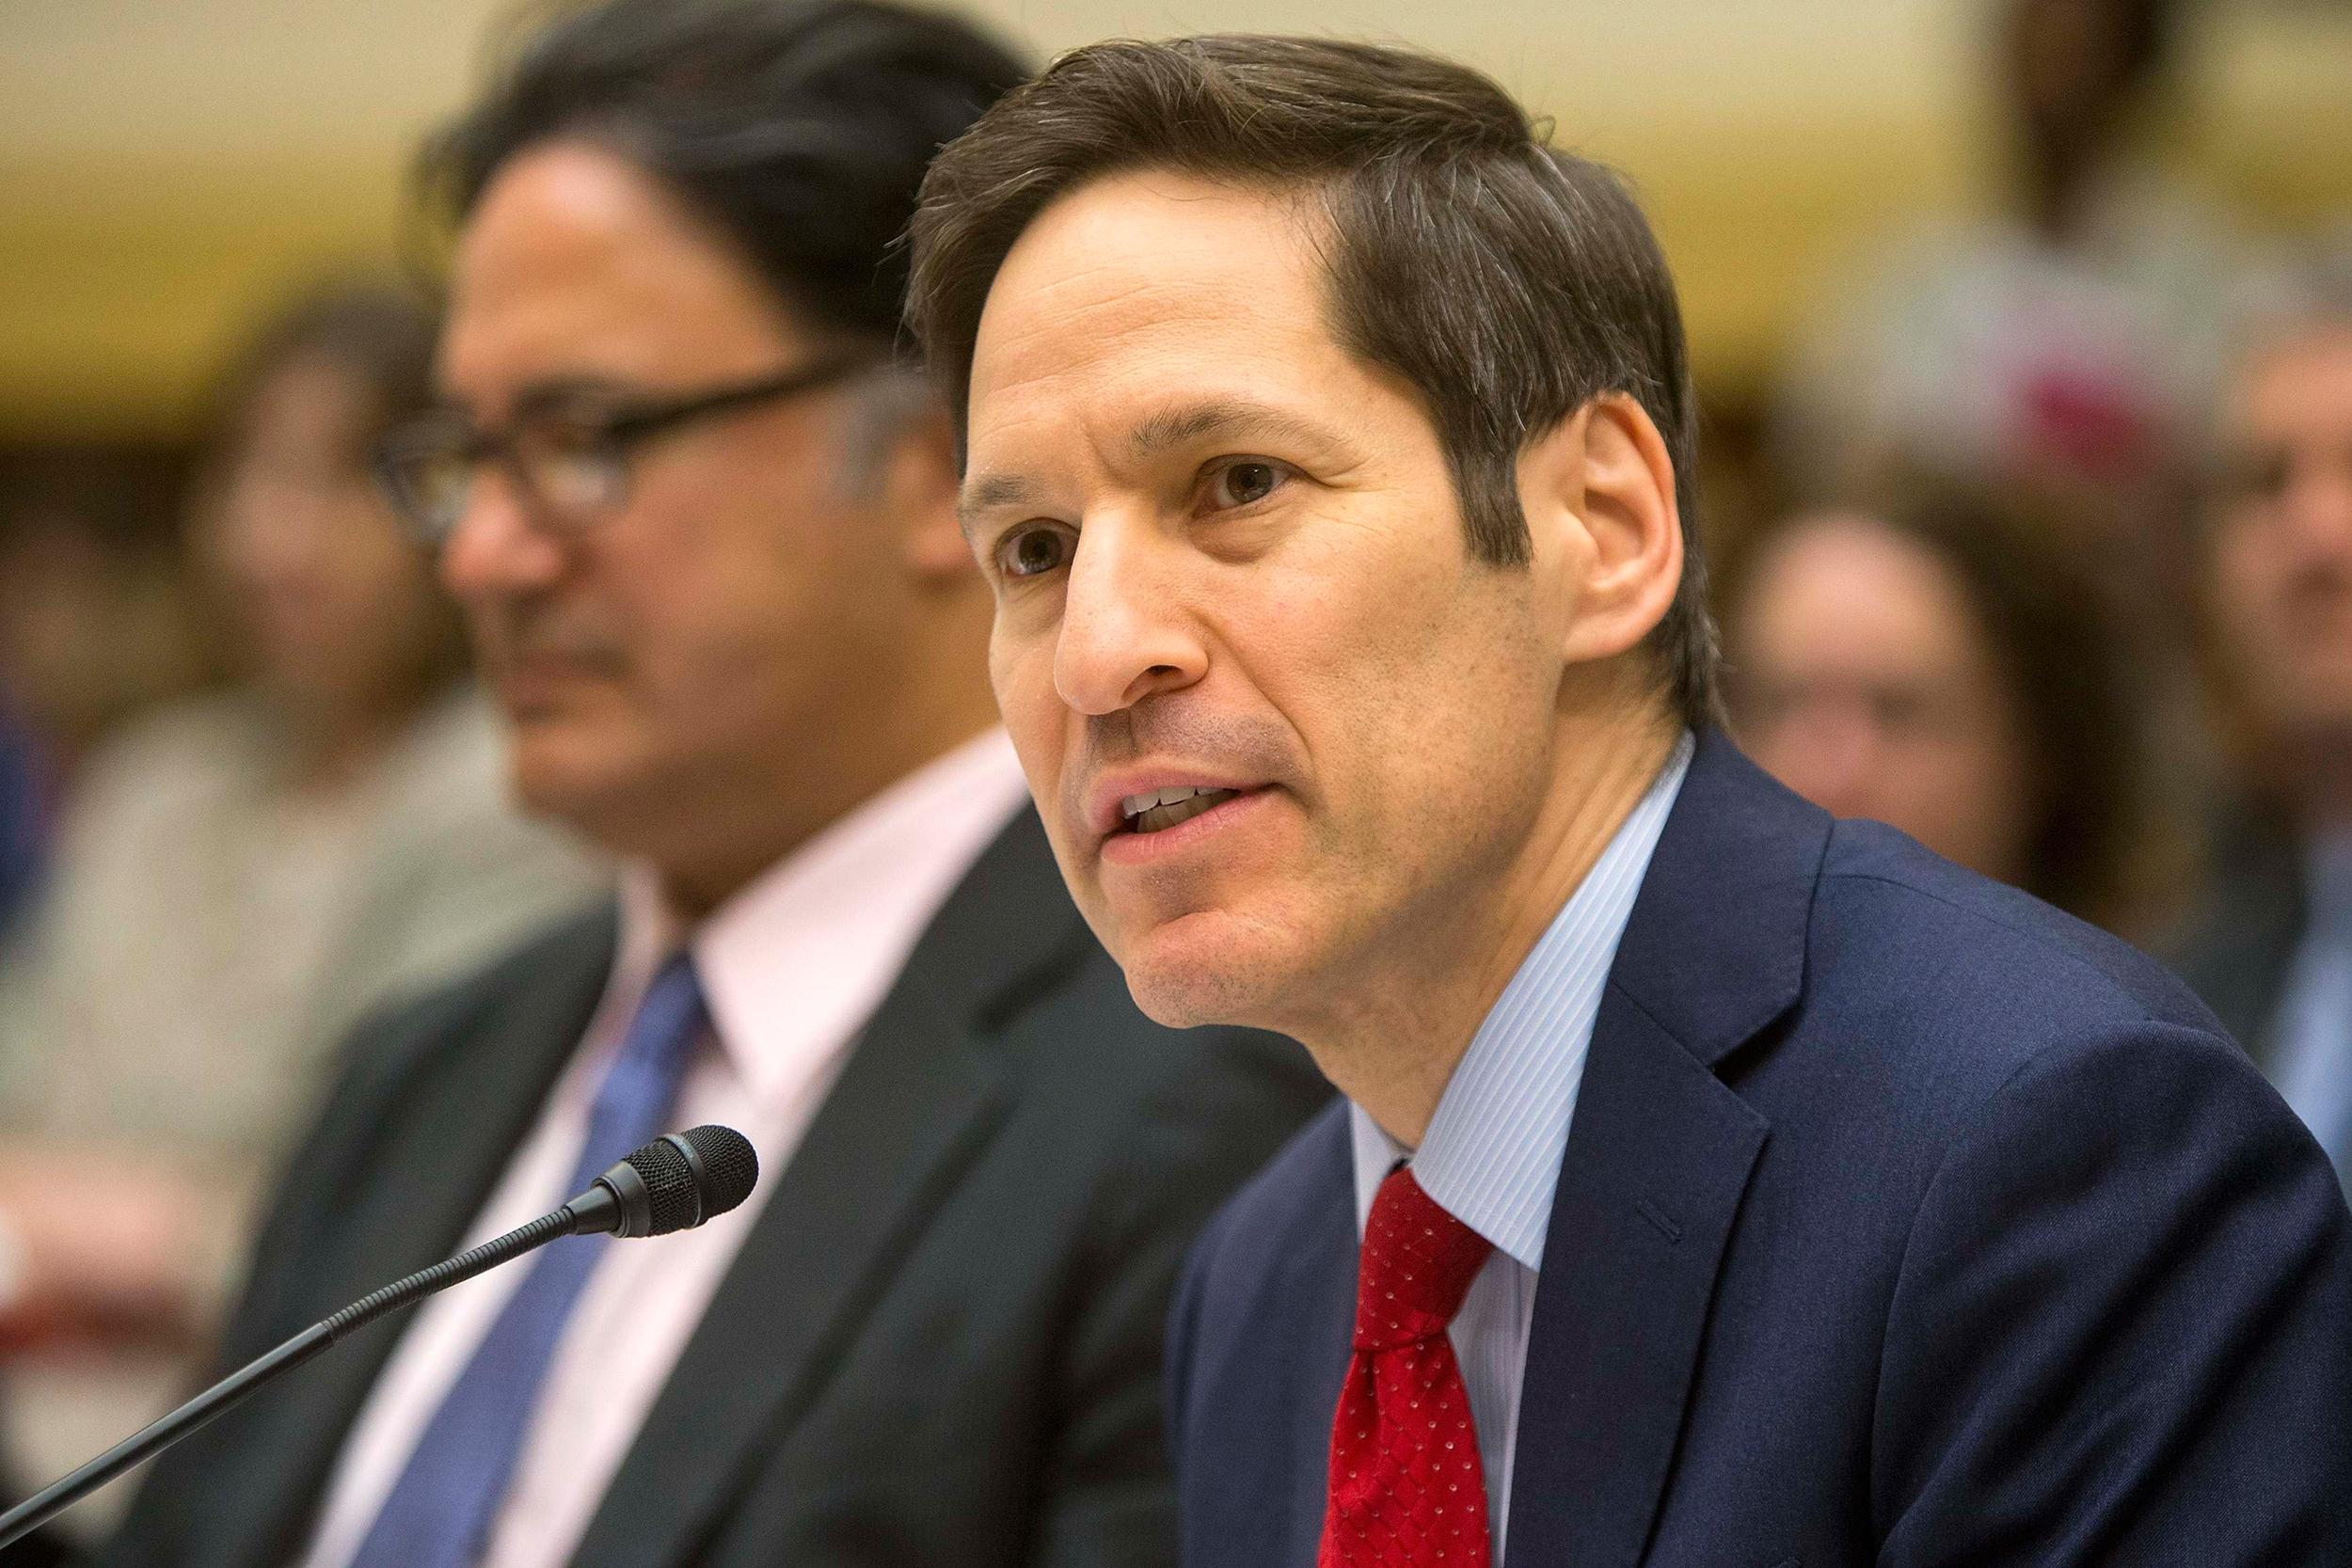 Image: Frieden testifies about the Ebola crisis in West Africa during a hearing of a House Foreign Affairs subcommittee on Capitol Hill in Washington